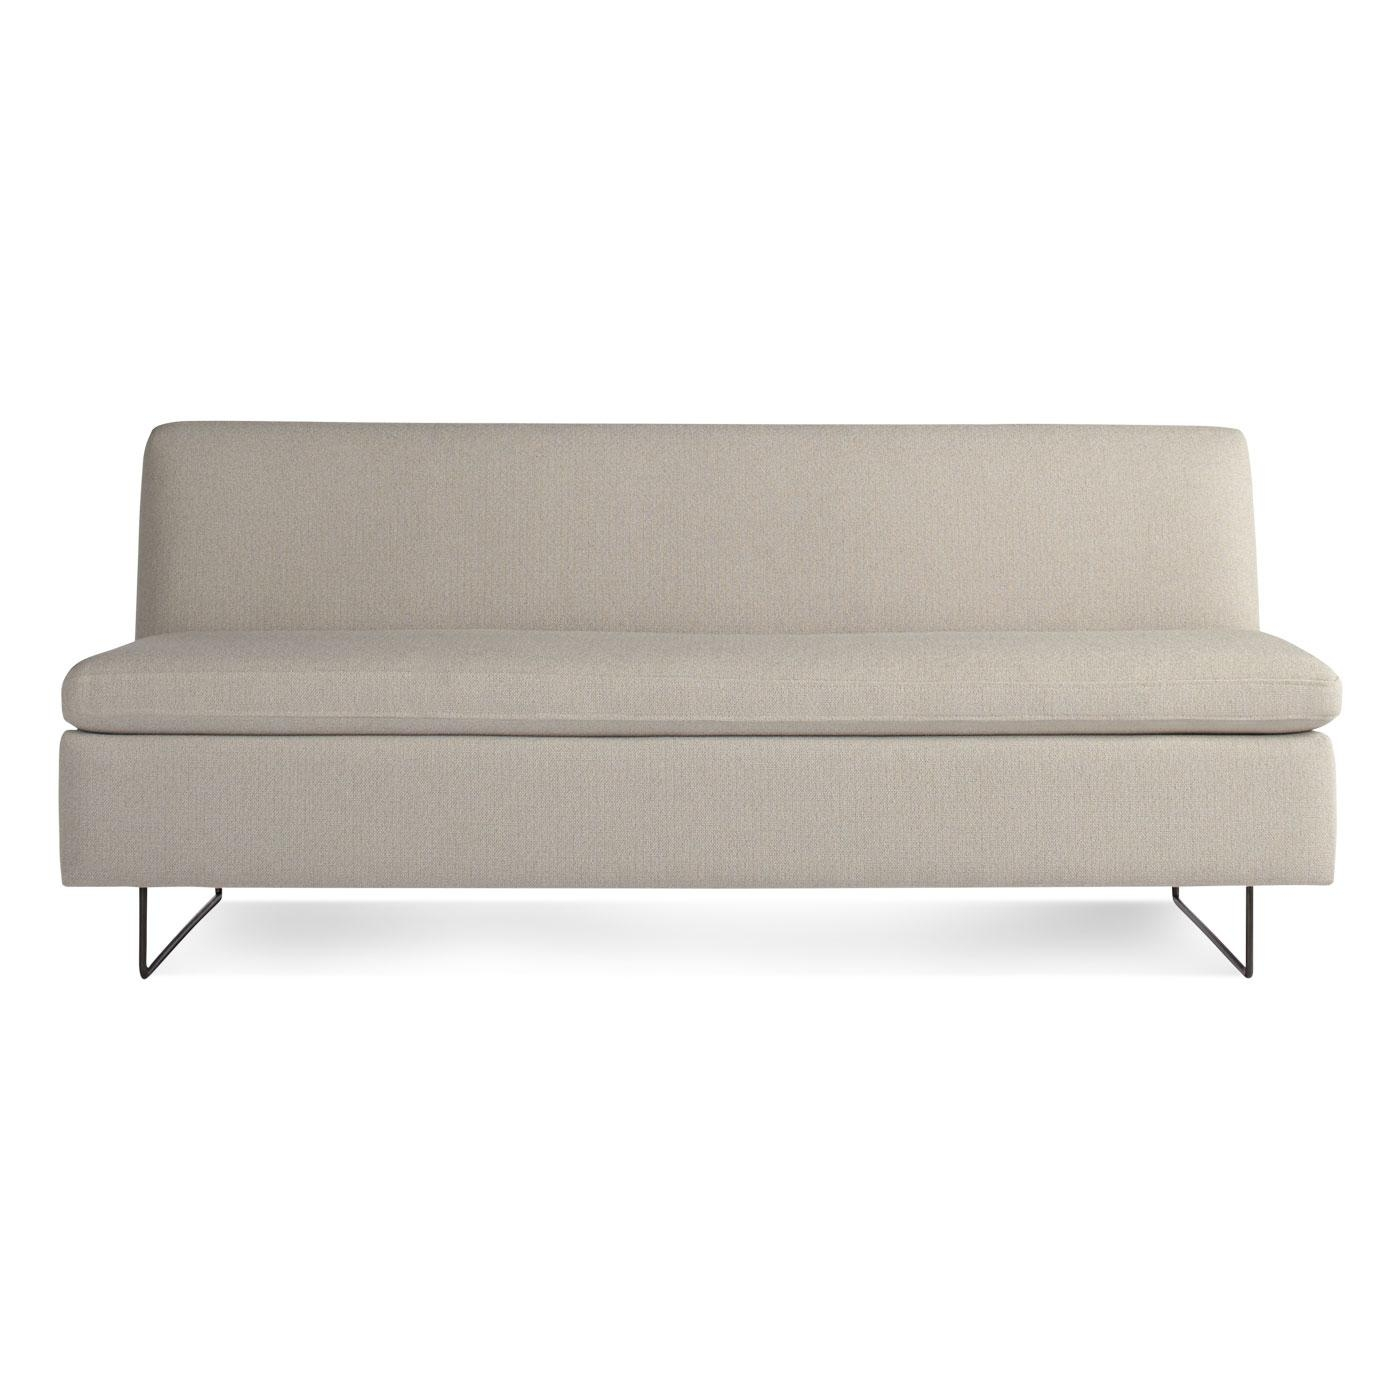 Furniture: Armless Sofa Bed | Armless Sofa Throughout Small Armless Sofa (Image 5 of 20)